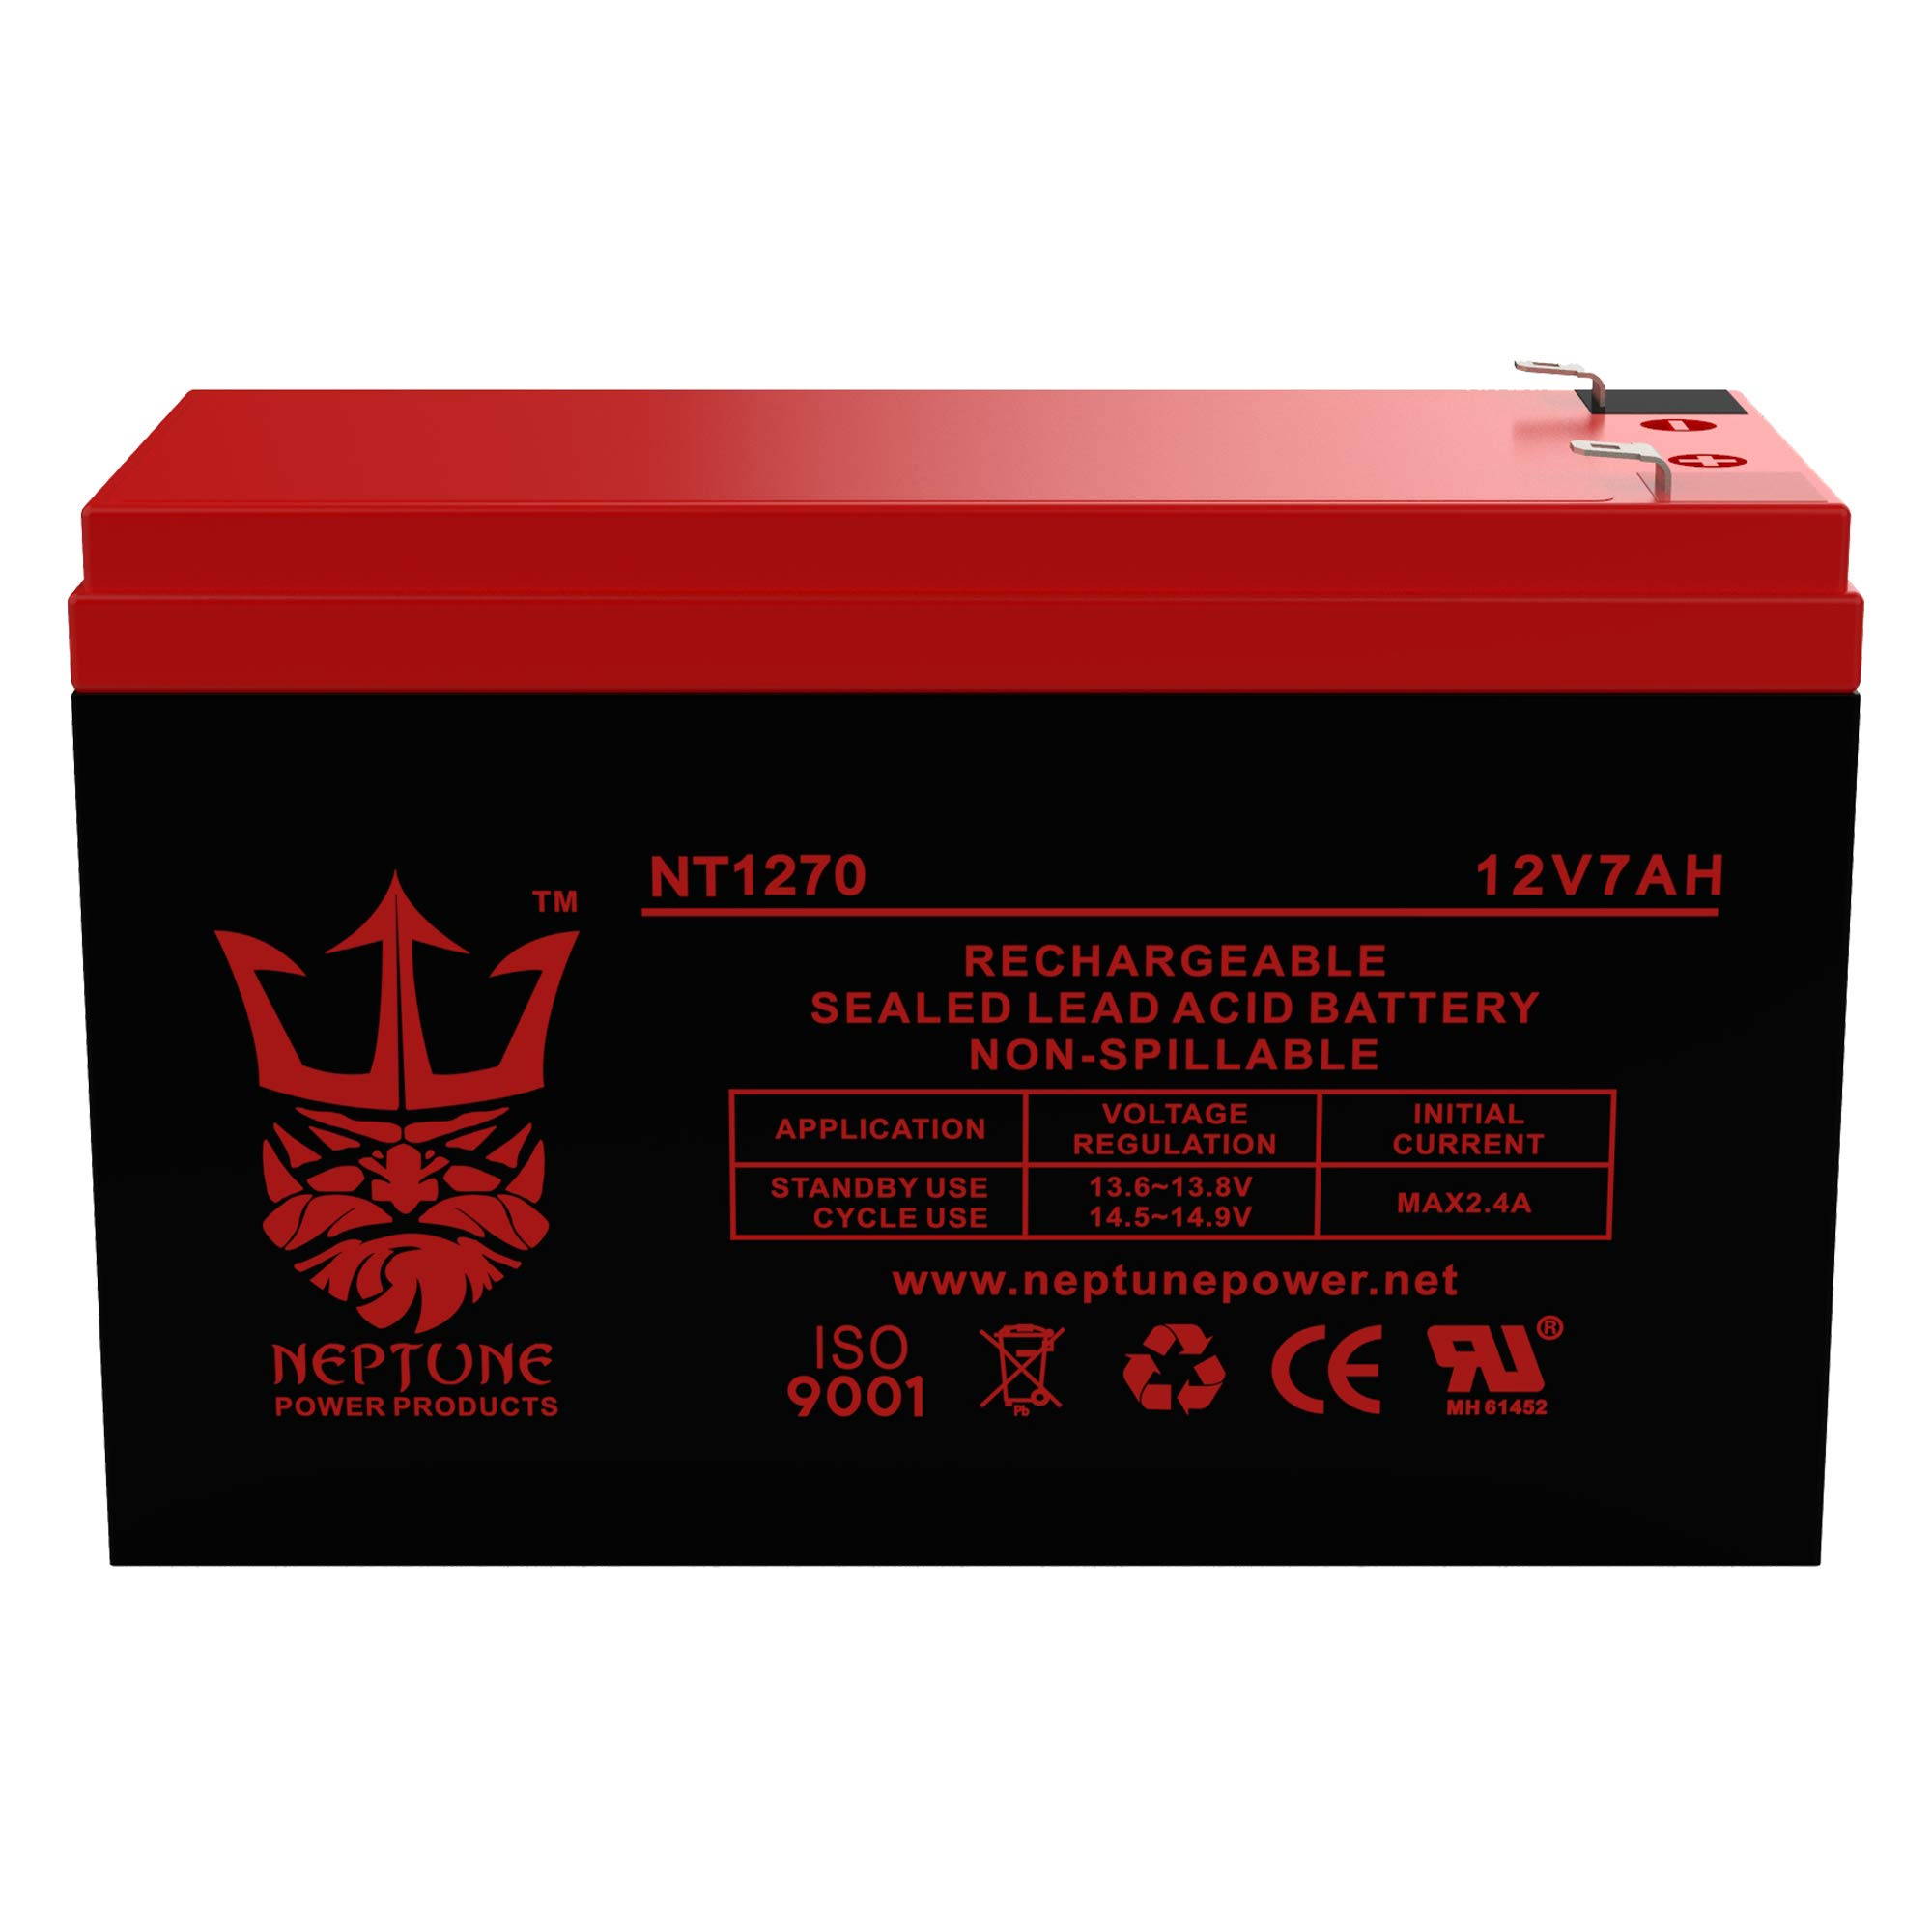 Verizon FiOS PX12072HG 12V 7Ah GS Portalac Battery Replacement GT12080-HG by Neptune